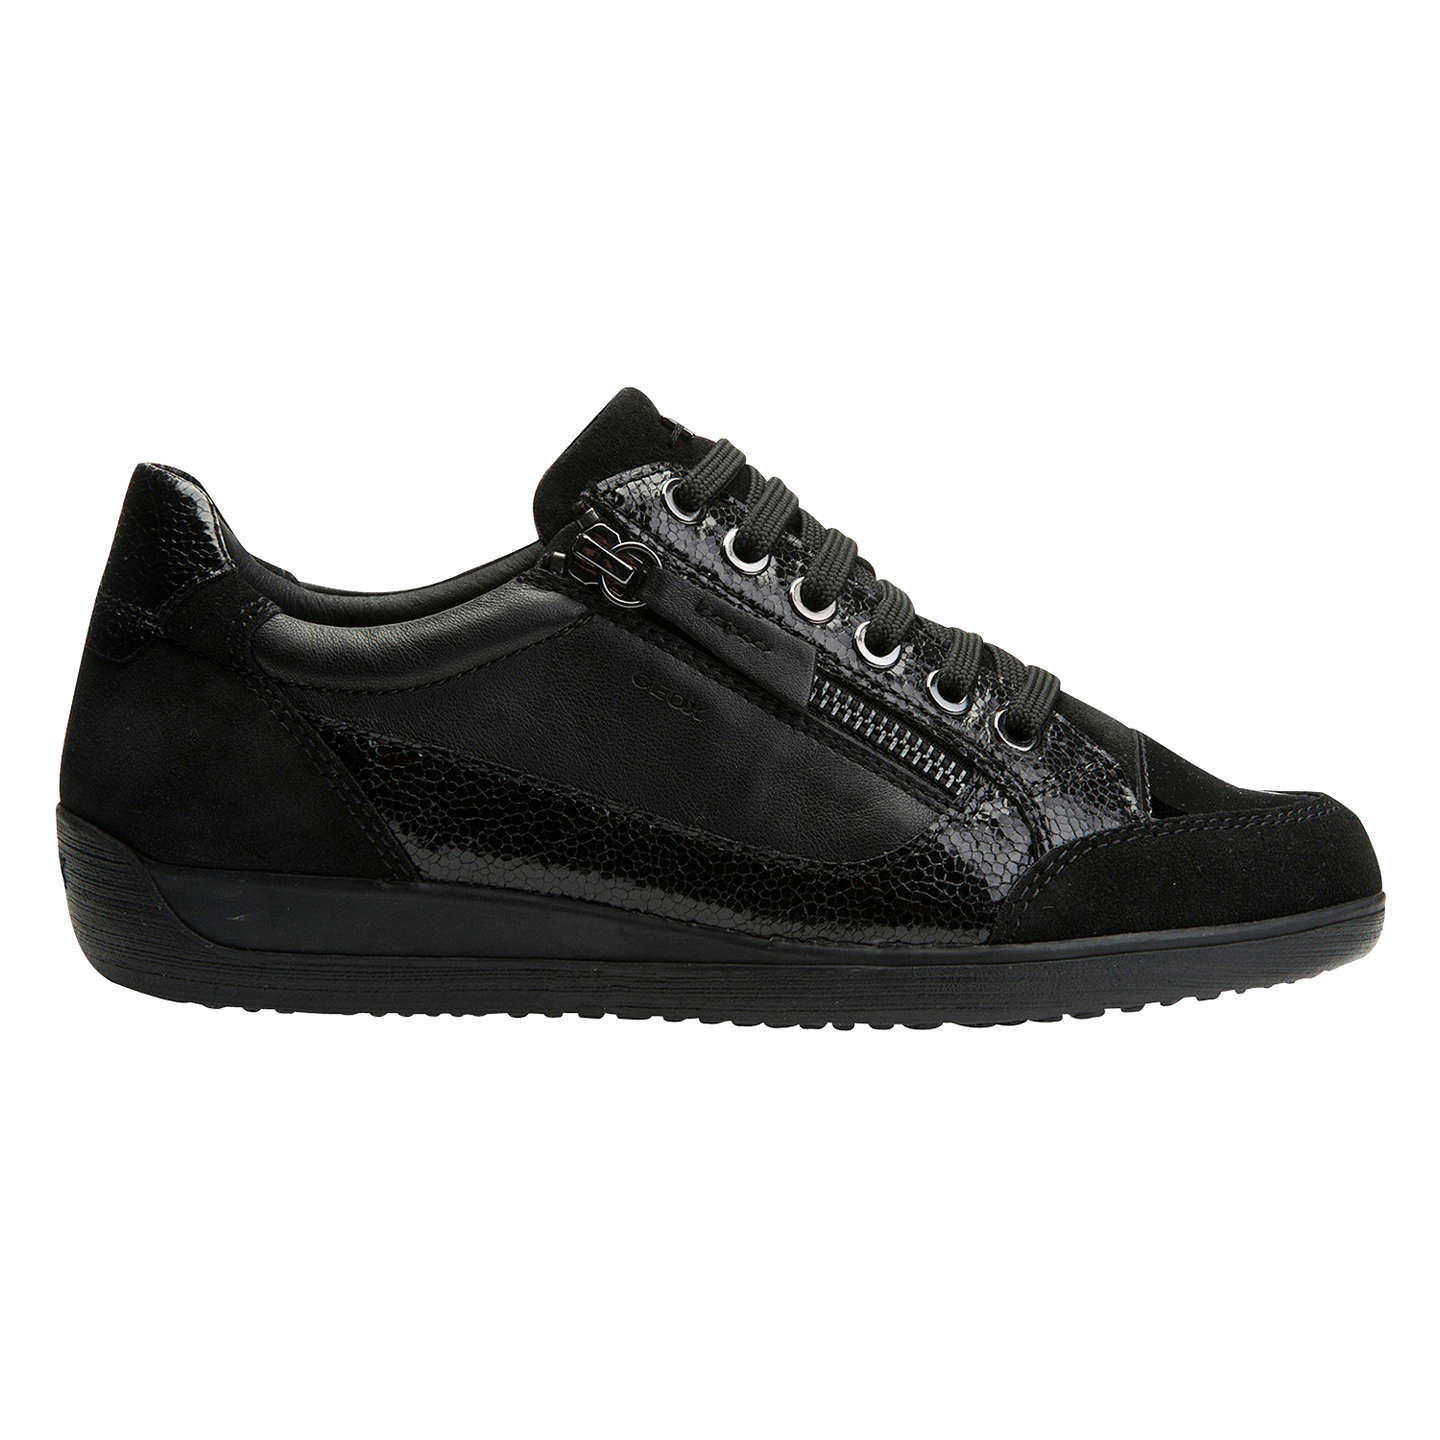 BuyGeox Myria Lace Up Trainers Black 3 Online at johnlewiscom